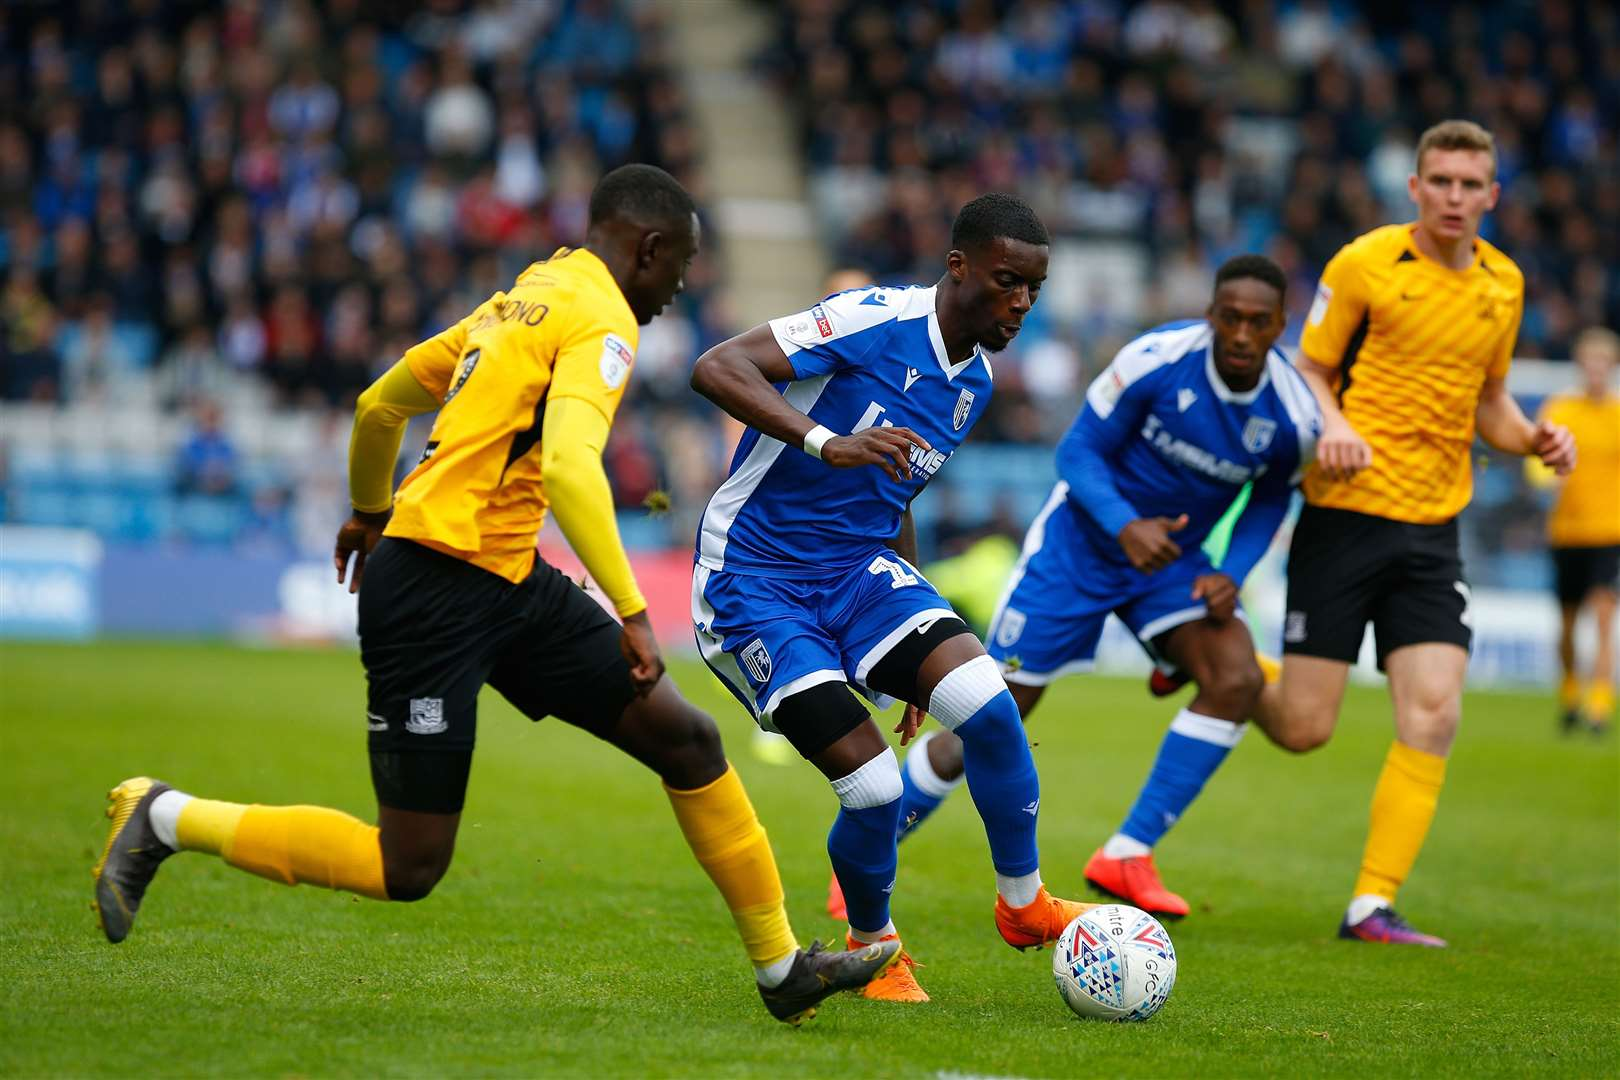 Mikael Ndjoli on the ball for Gillingham Picture: Andy Jones